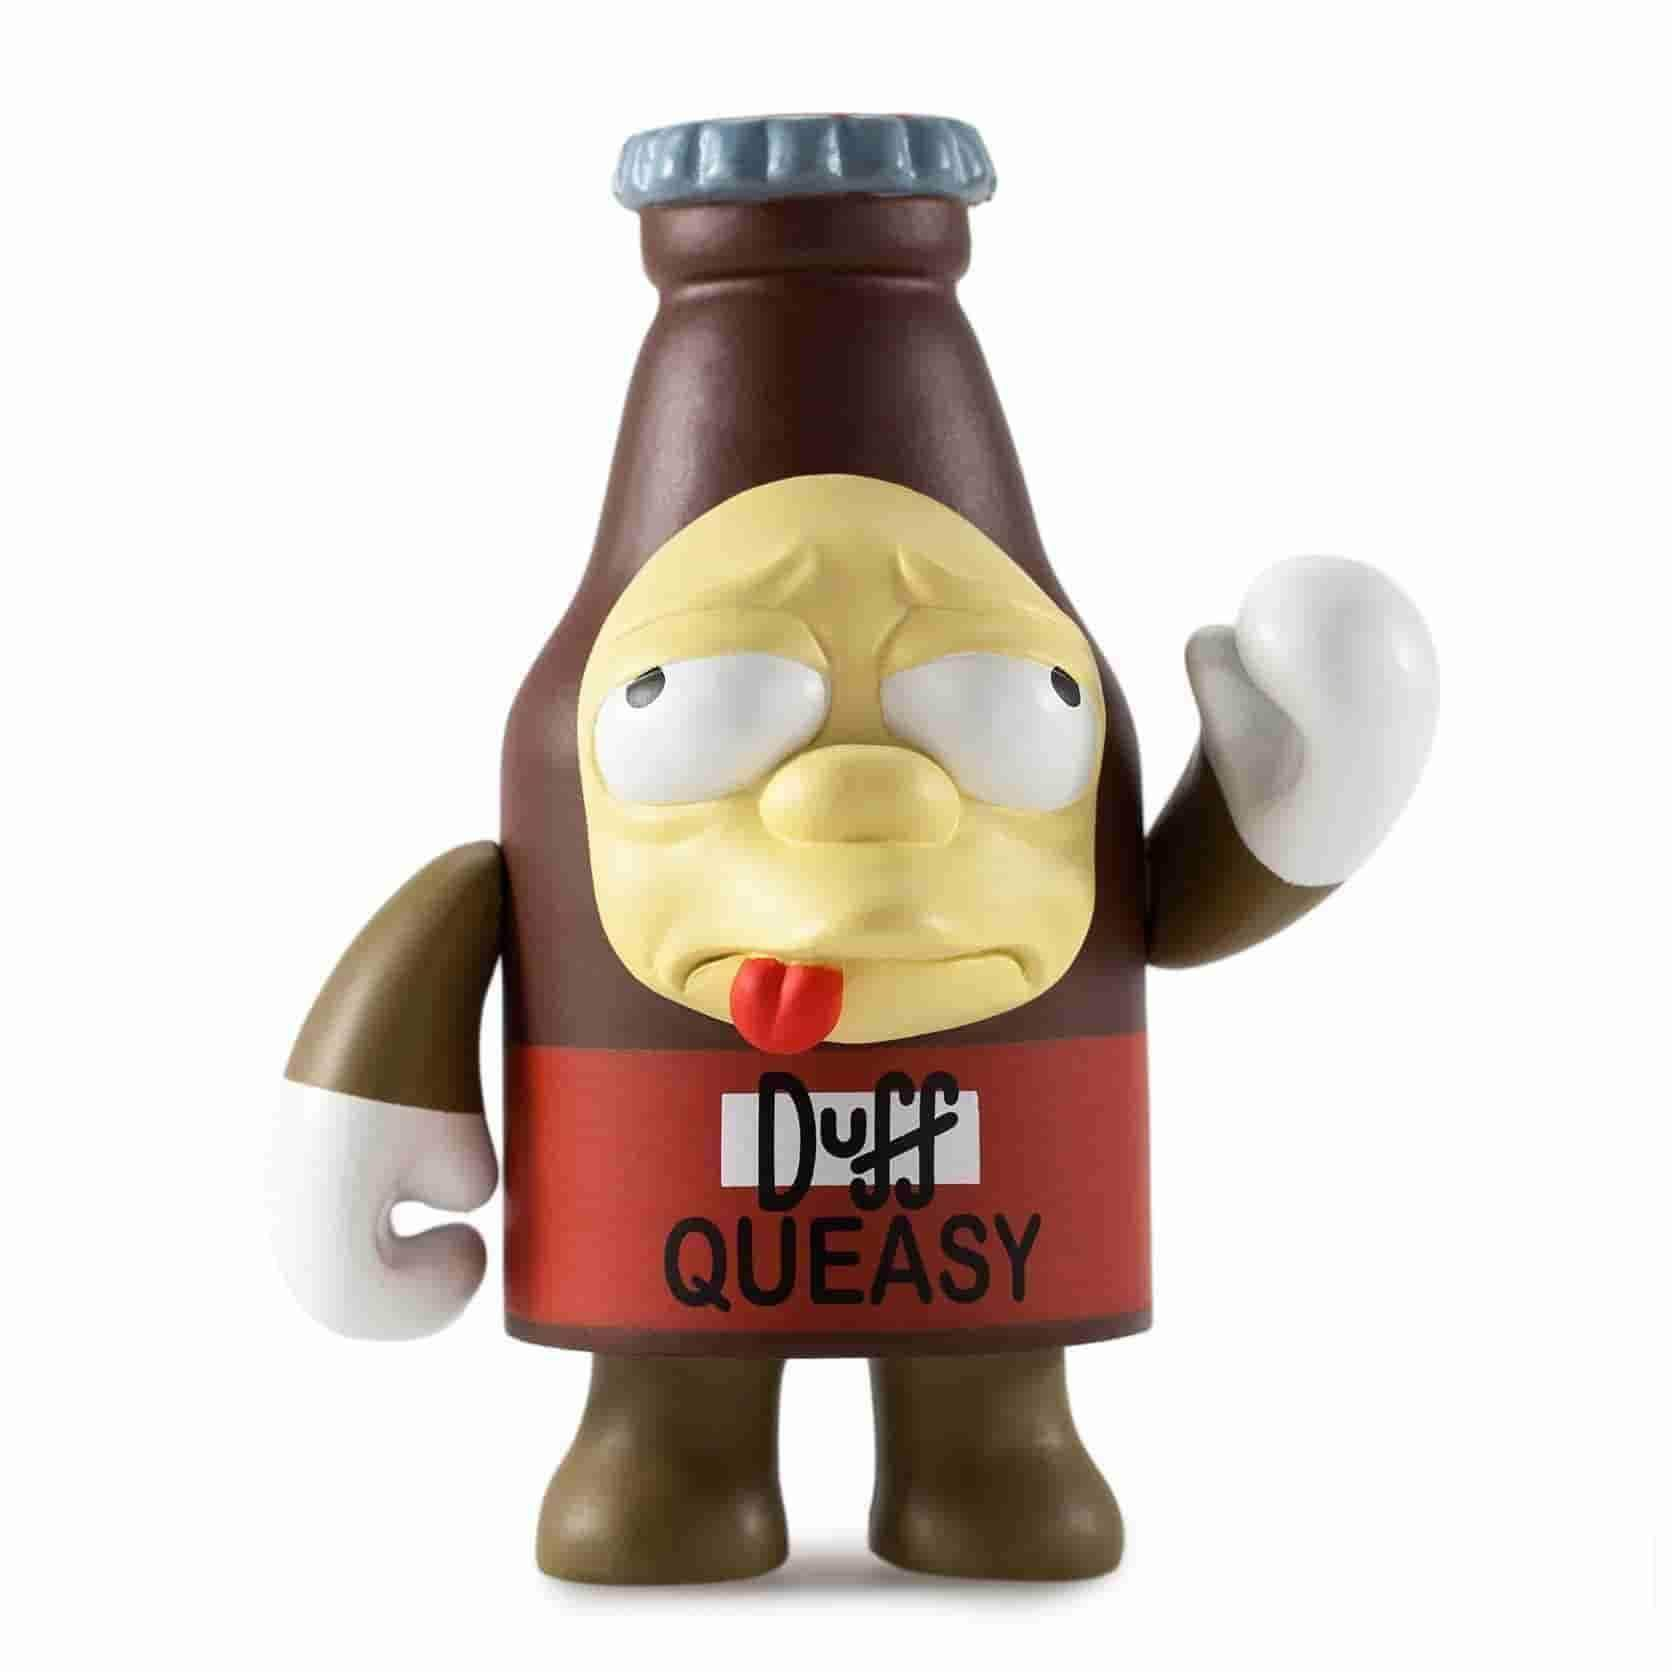 Queasy Duff Simpsons 25th Anniversary Mini Series by Kidrobot - IamRetro.com